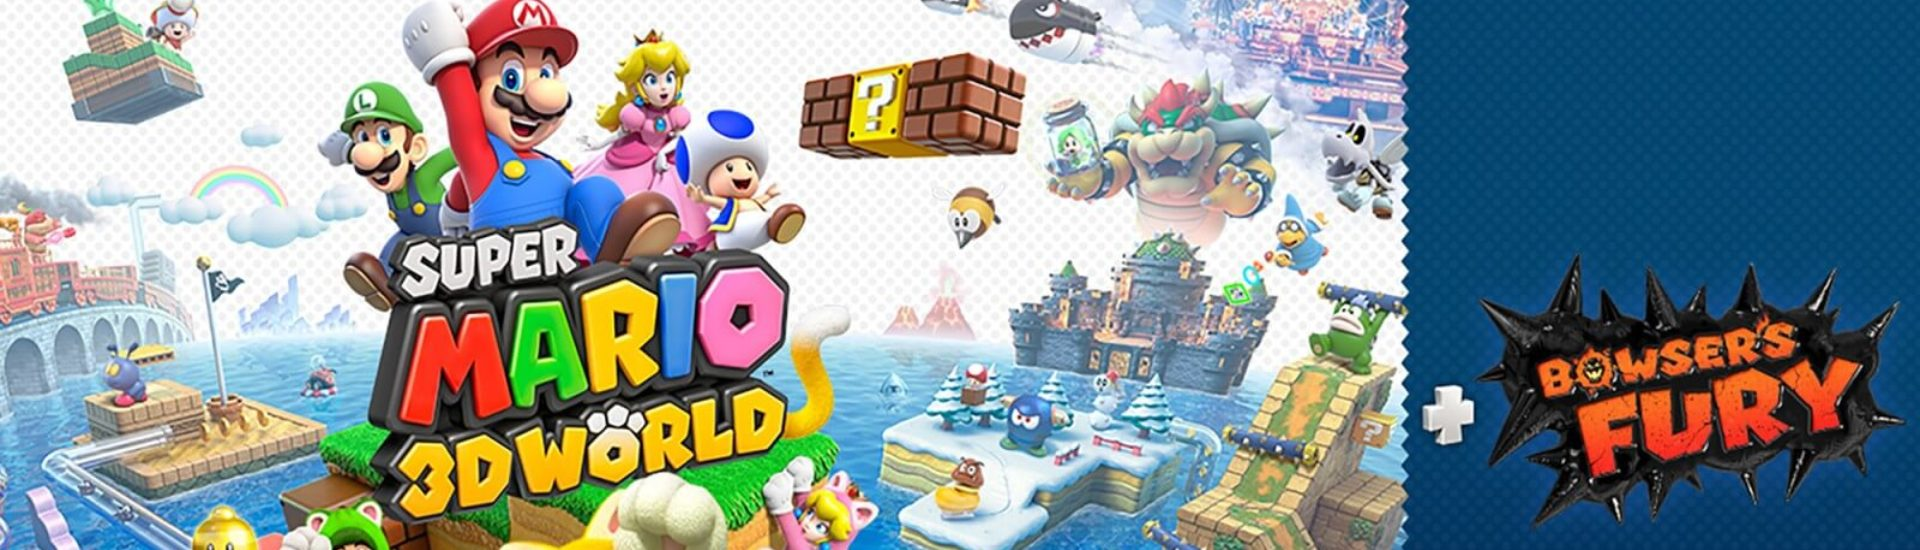 """Super Mario 3D World"" + ""Bowser's Fury"" kommt Anfang 2021 für Nintendo Switch"